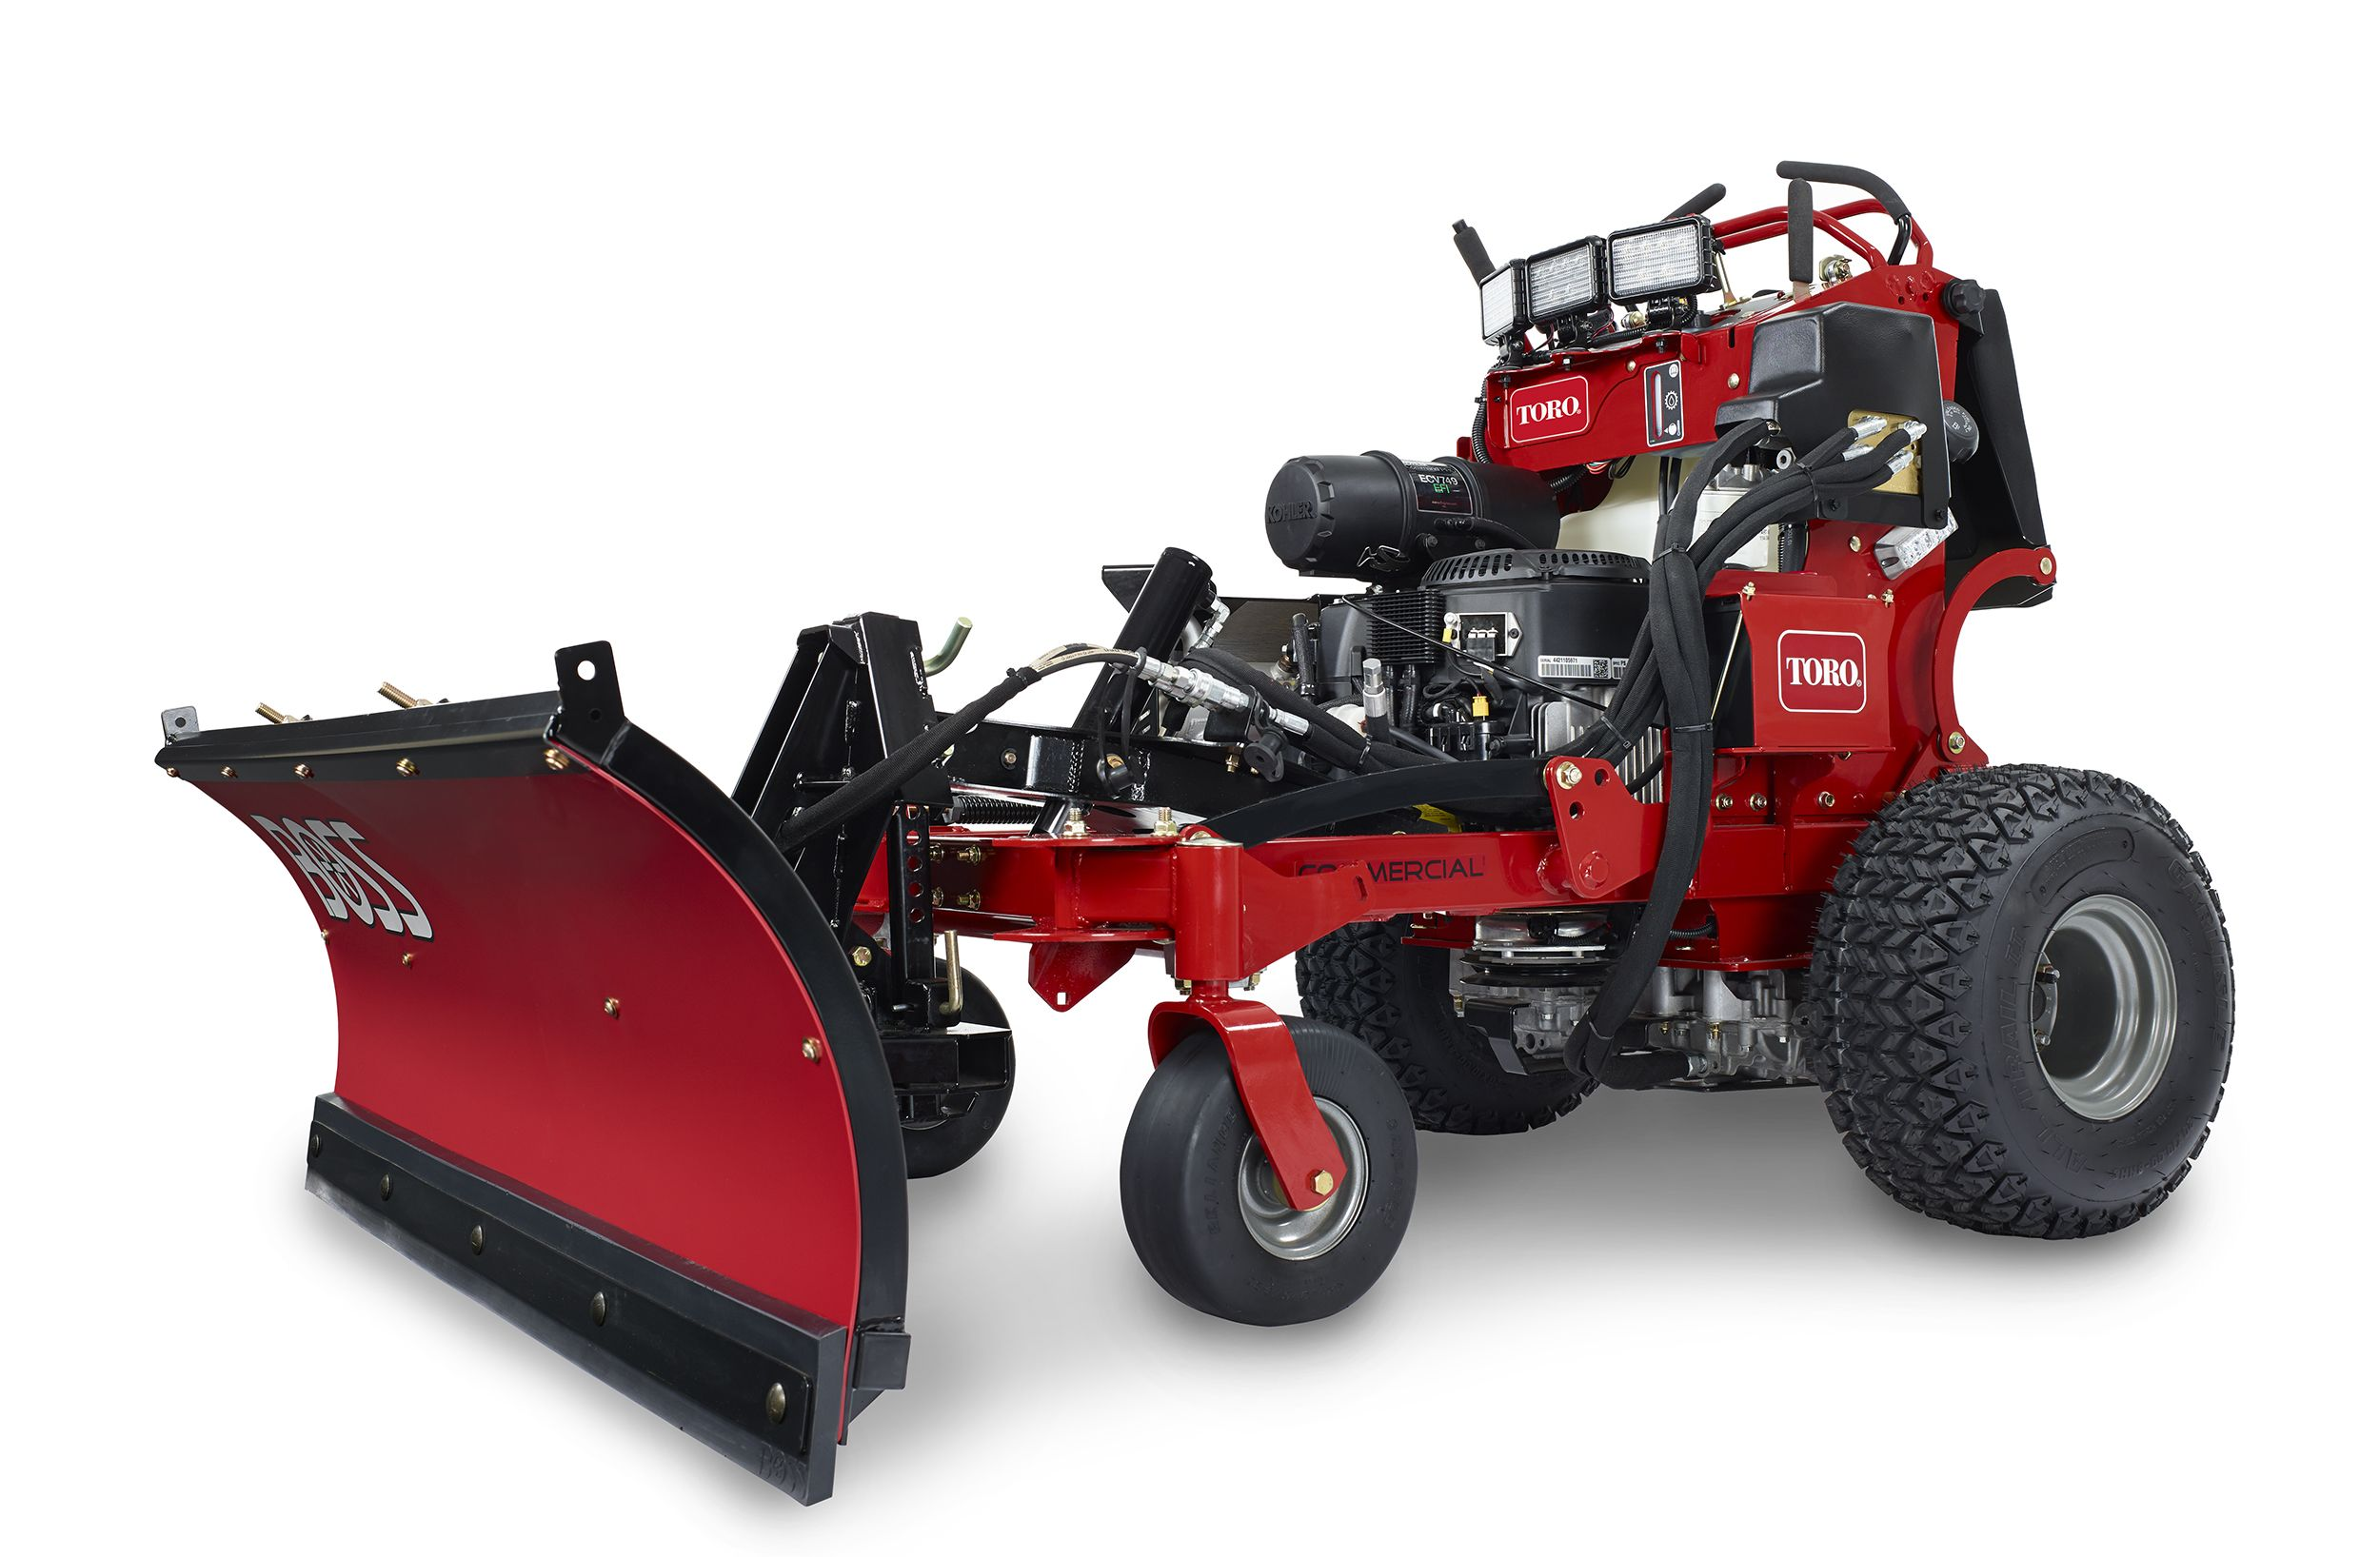 Toro stand-on mower now takes snow-plow attachments